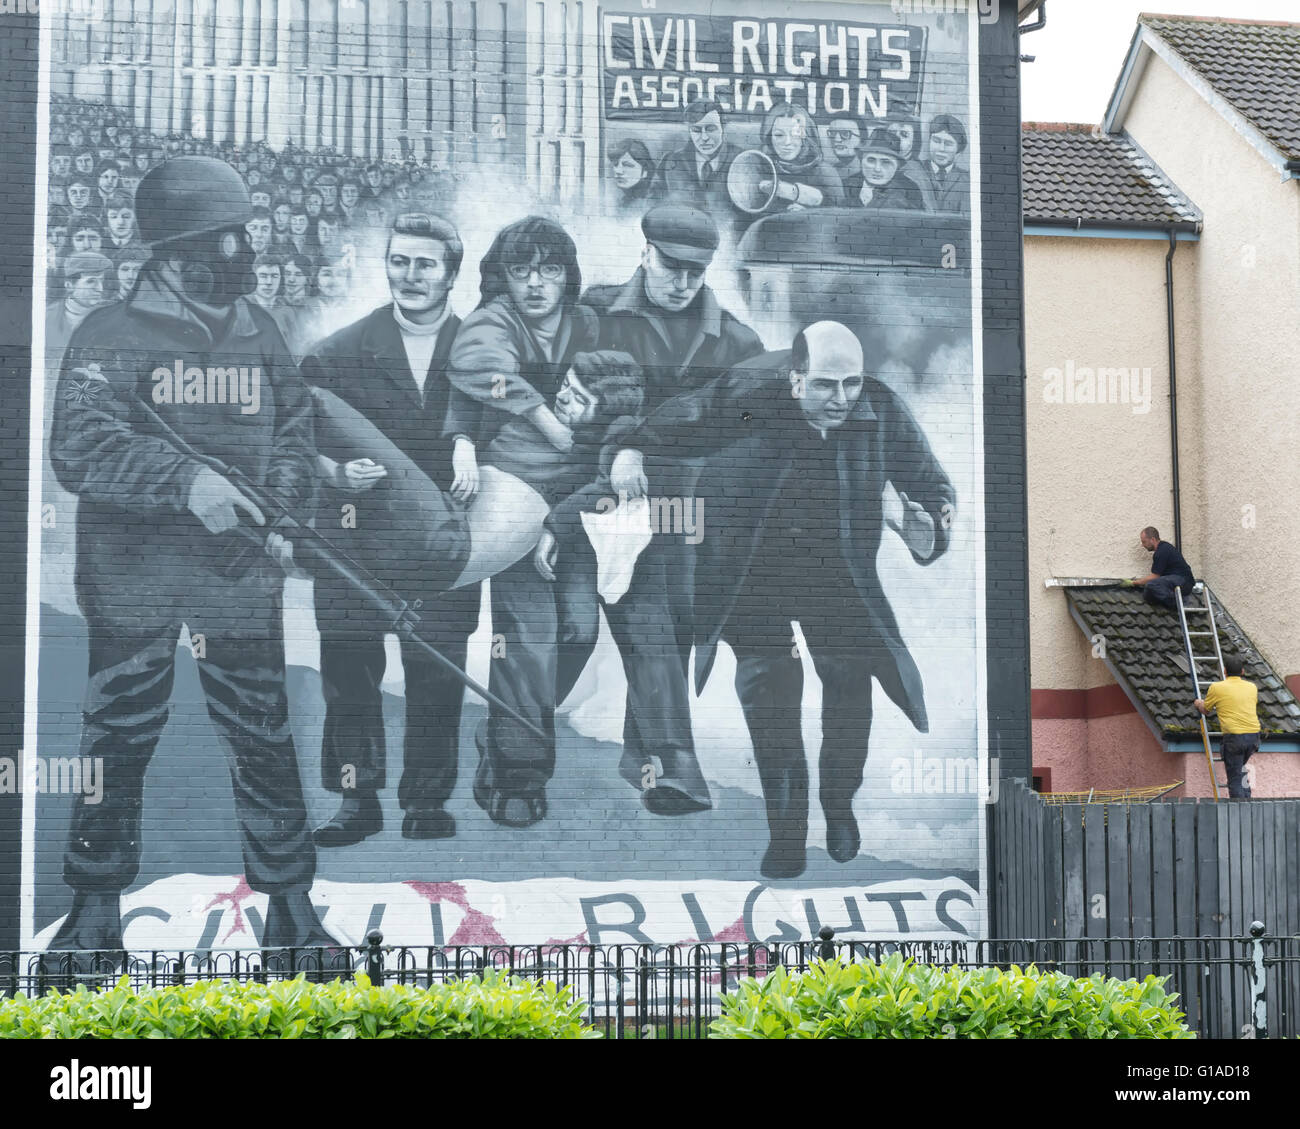 The Bloody Sunday mural showing catholic priest Edward Daly (later to become Bishop Daly) waving a white handkerchief. - Stock Image